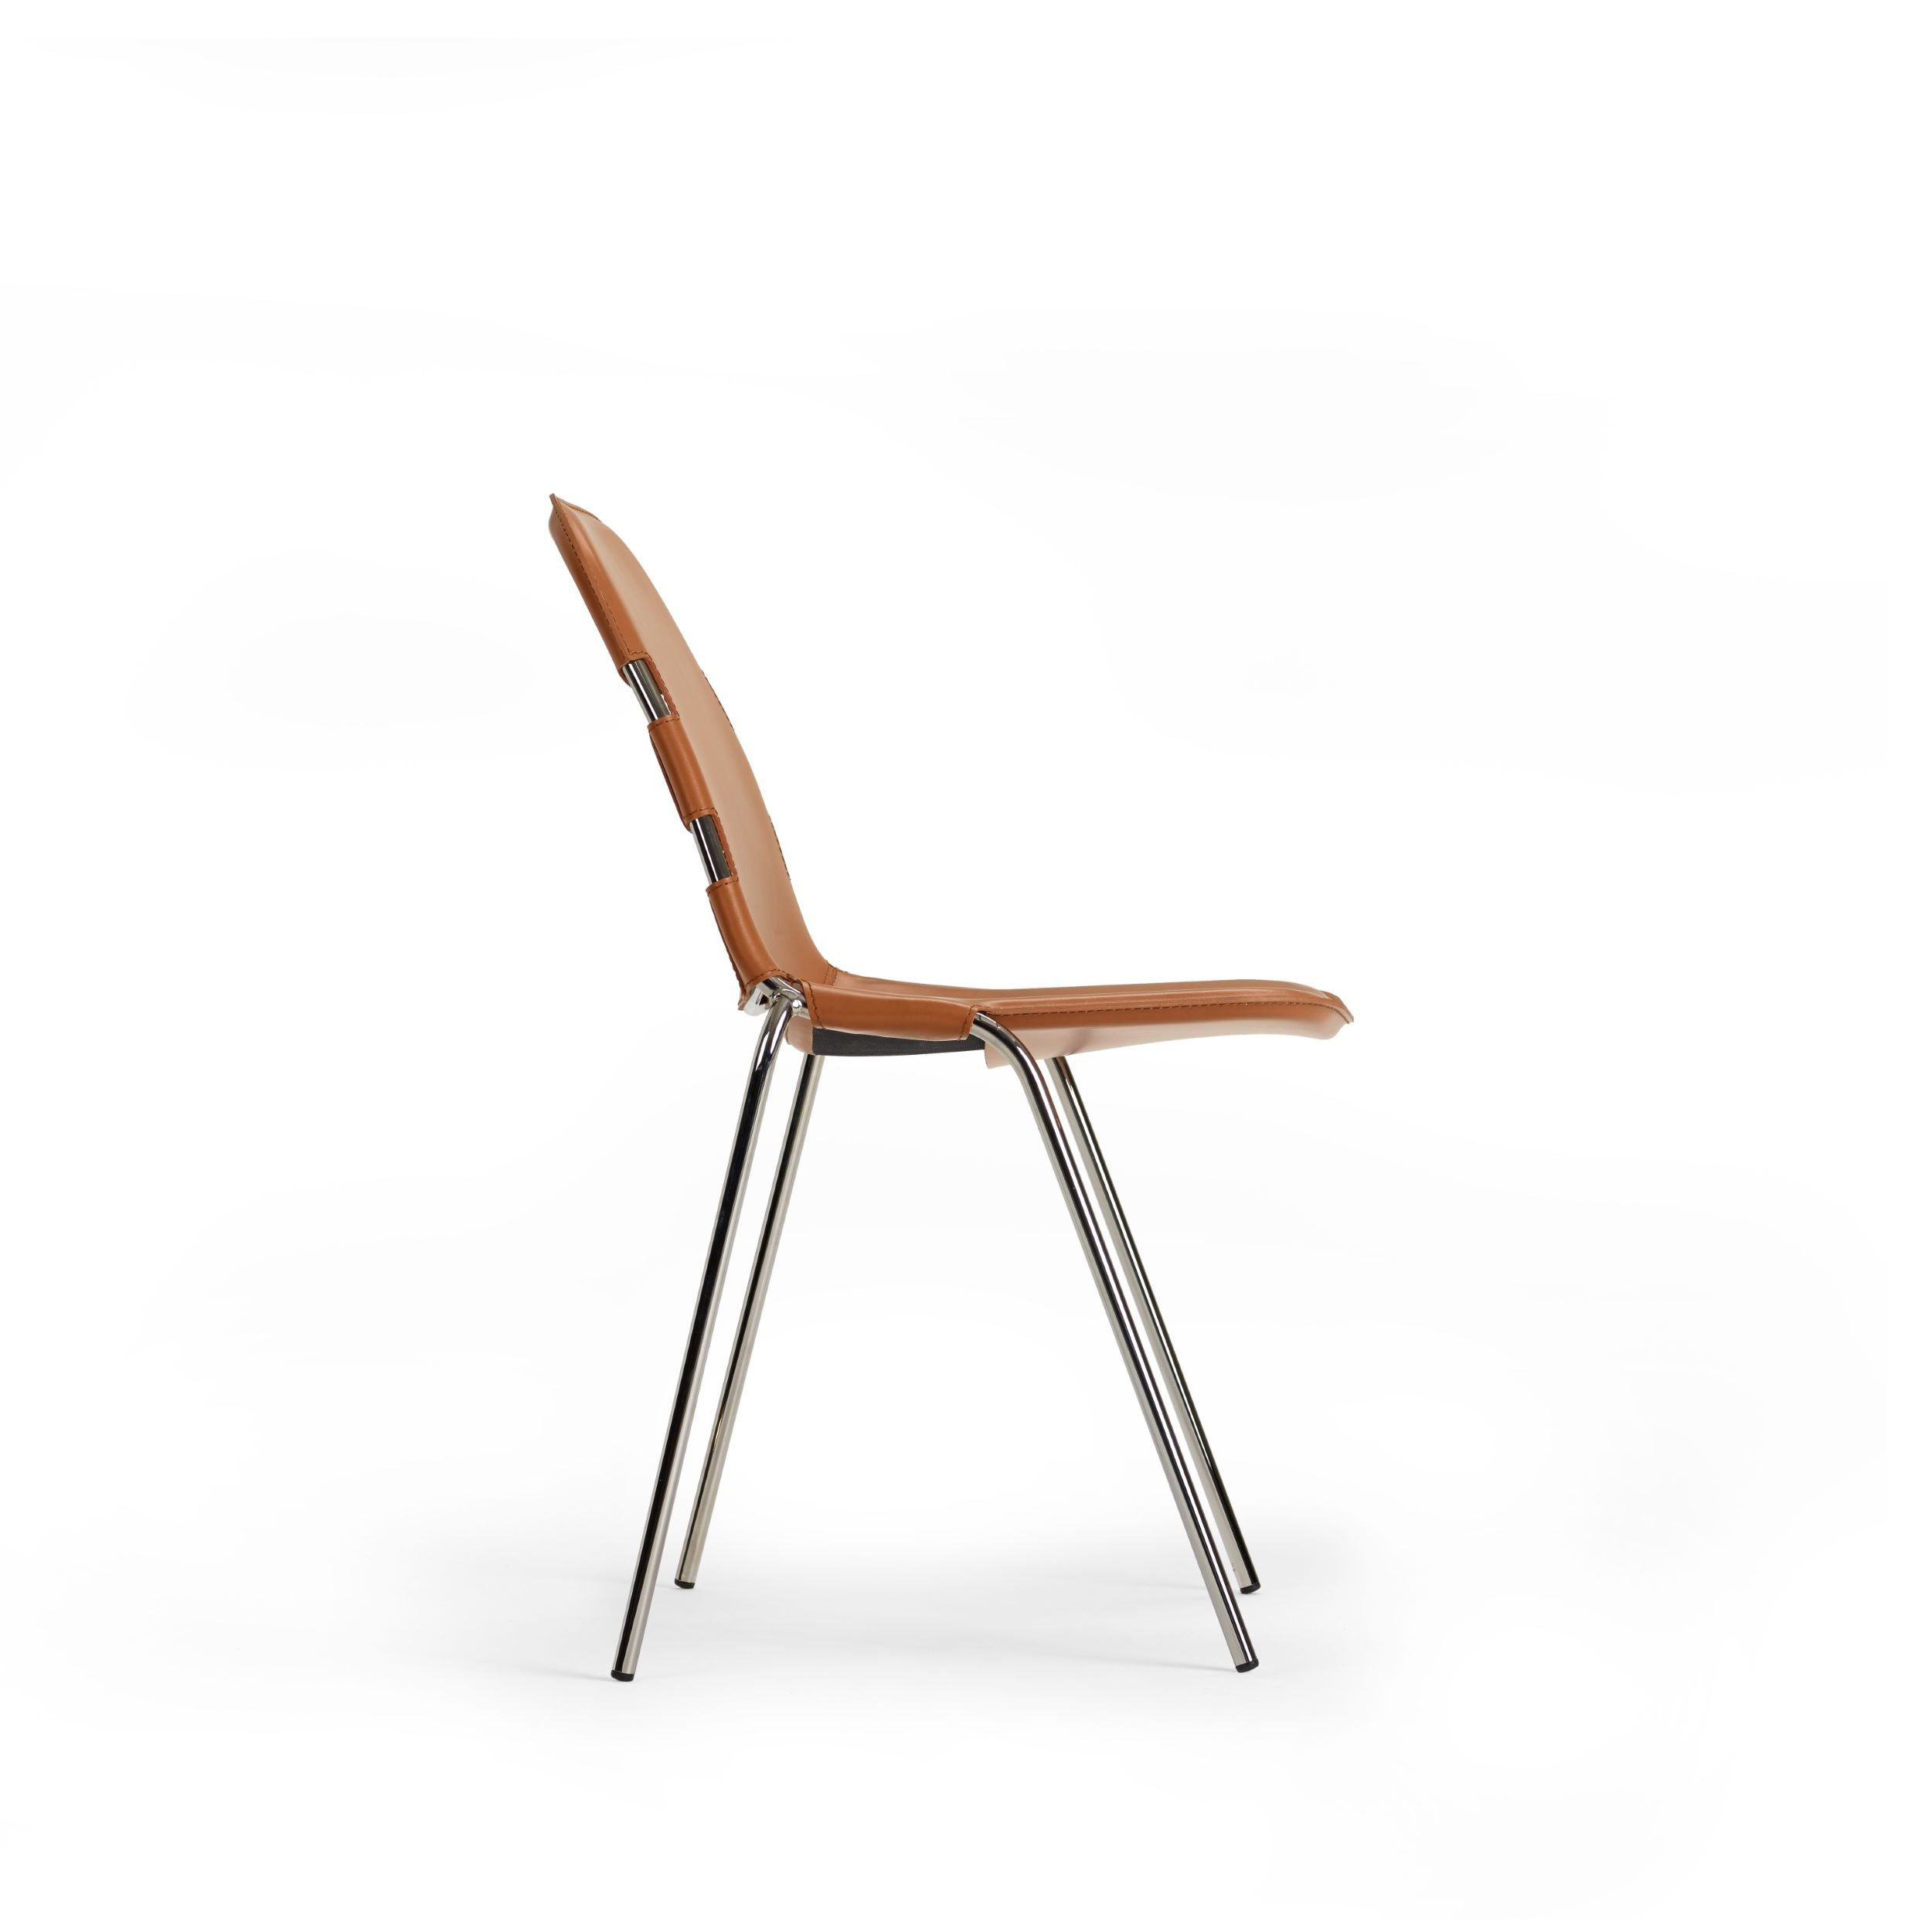 the bike chair spa massage cognac or black leather monica forster offecct this iframe contains logic required to handle ajax powered gravity forms